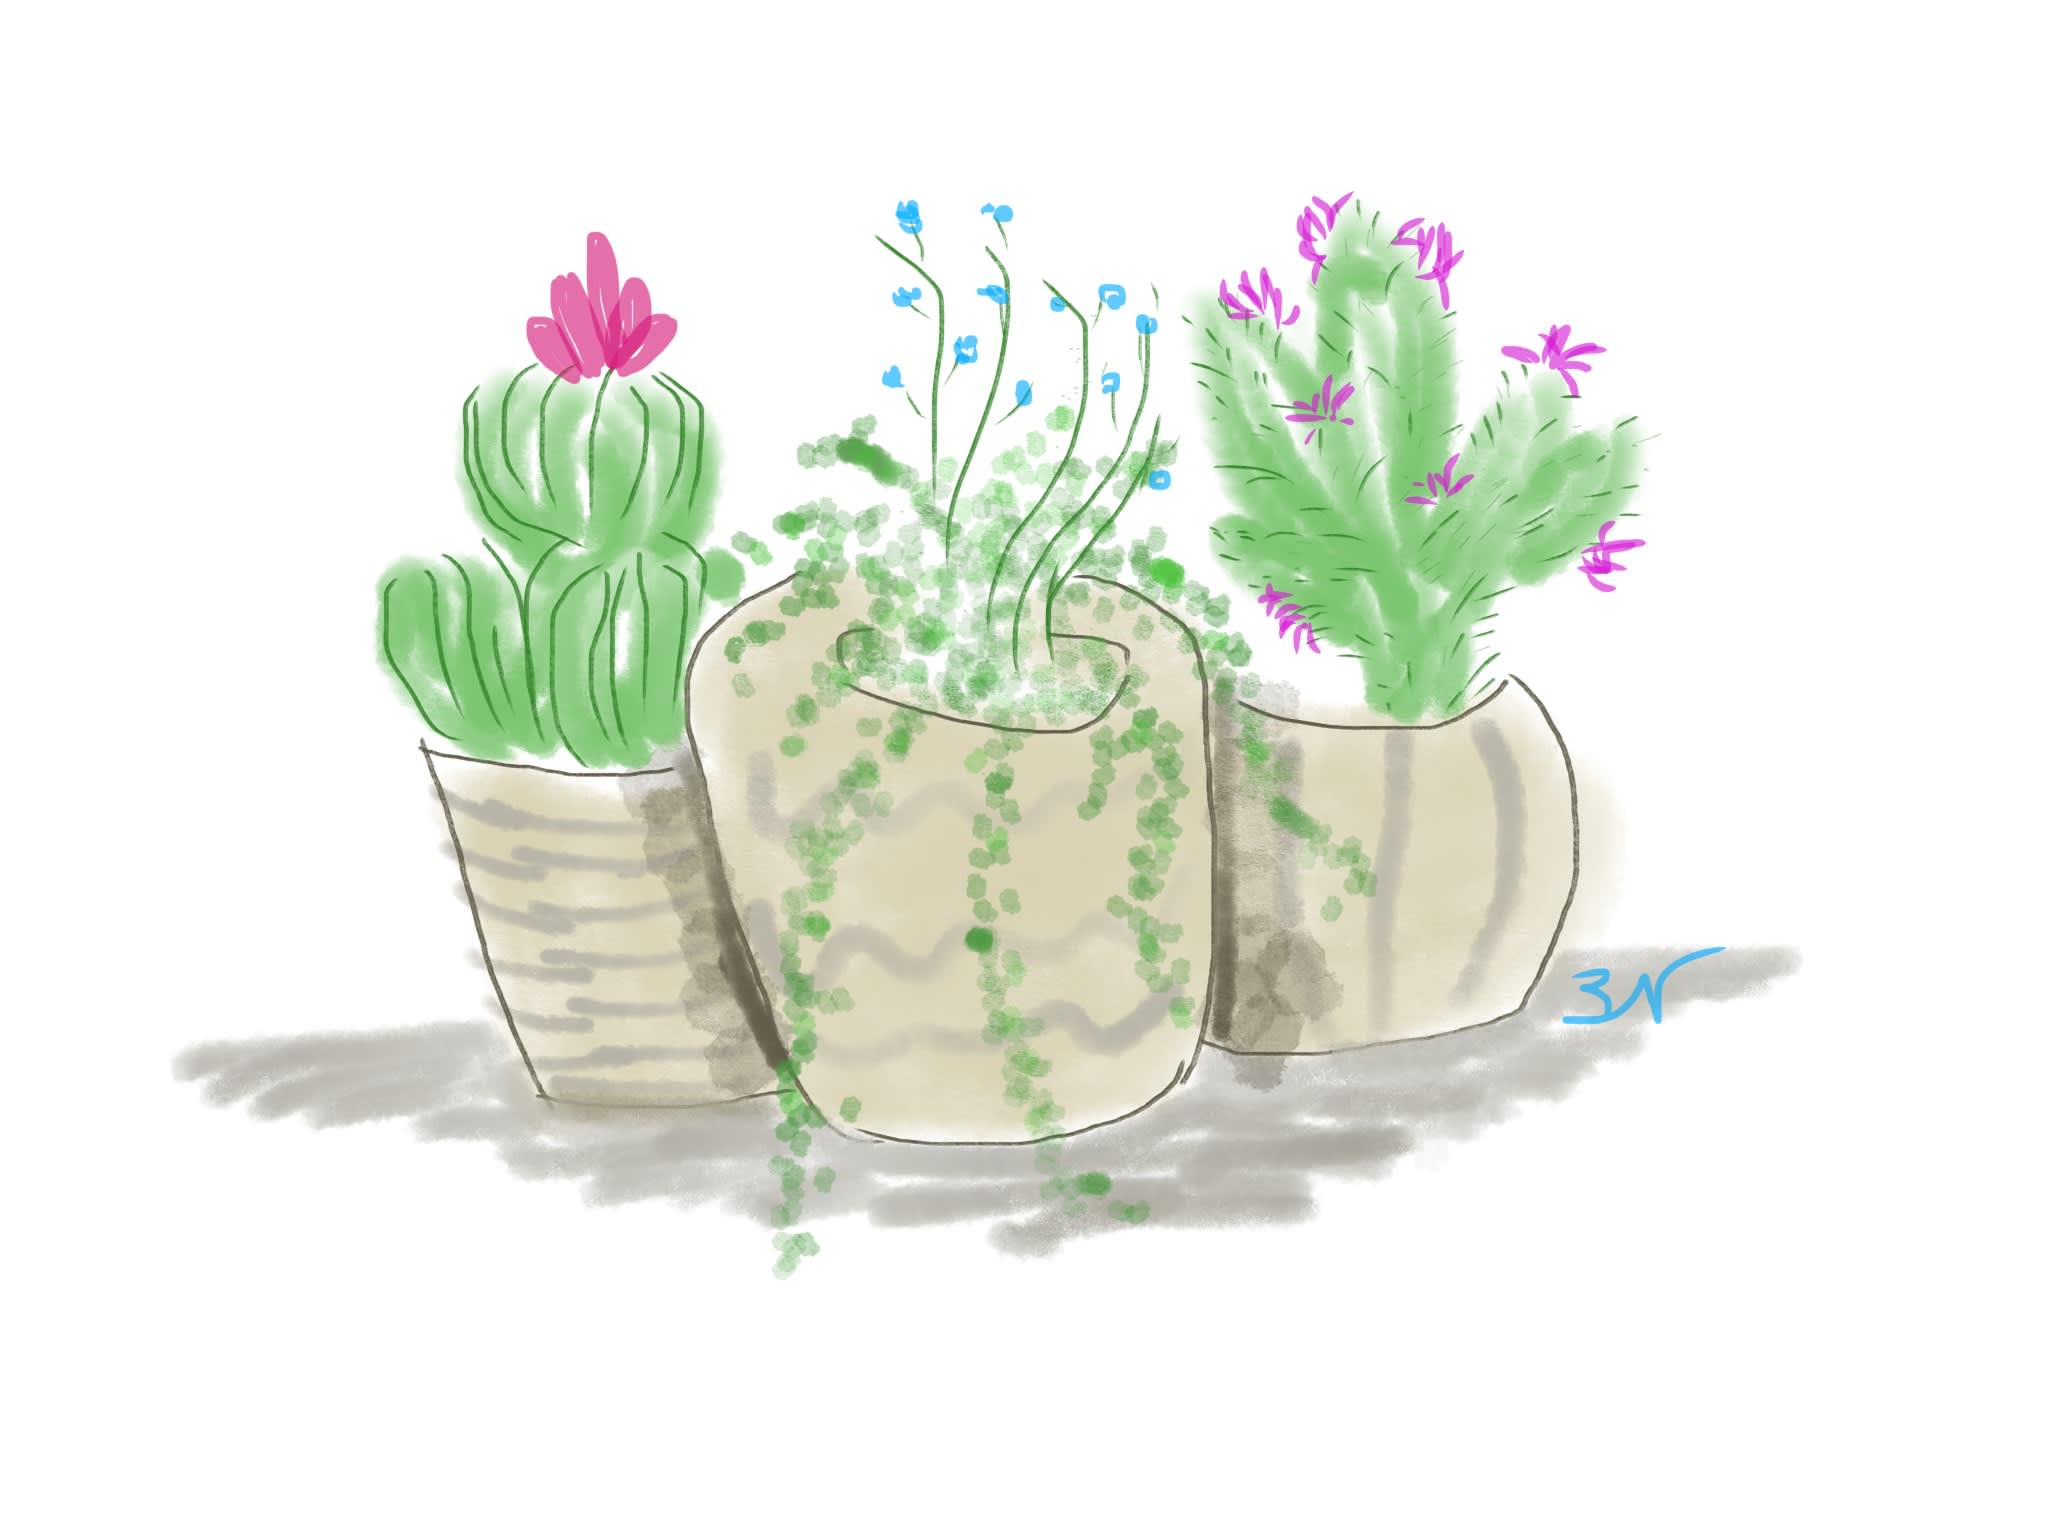 Create A Simple Plant Drawing In Pastel Water Color Or Ink By Luvsapplechips